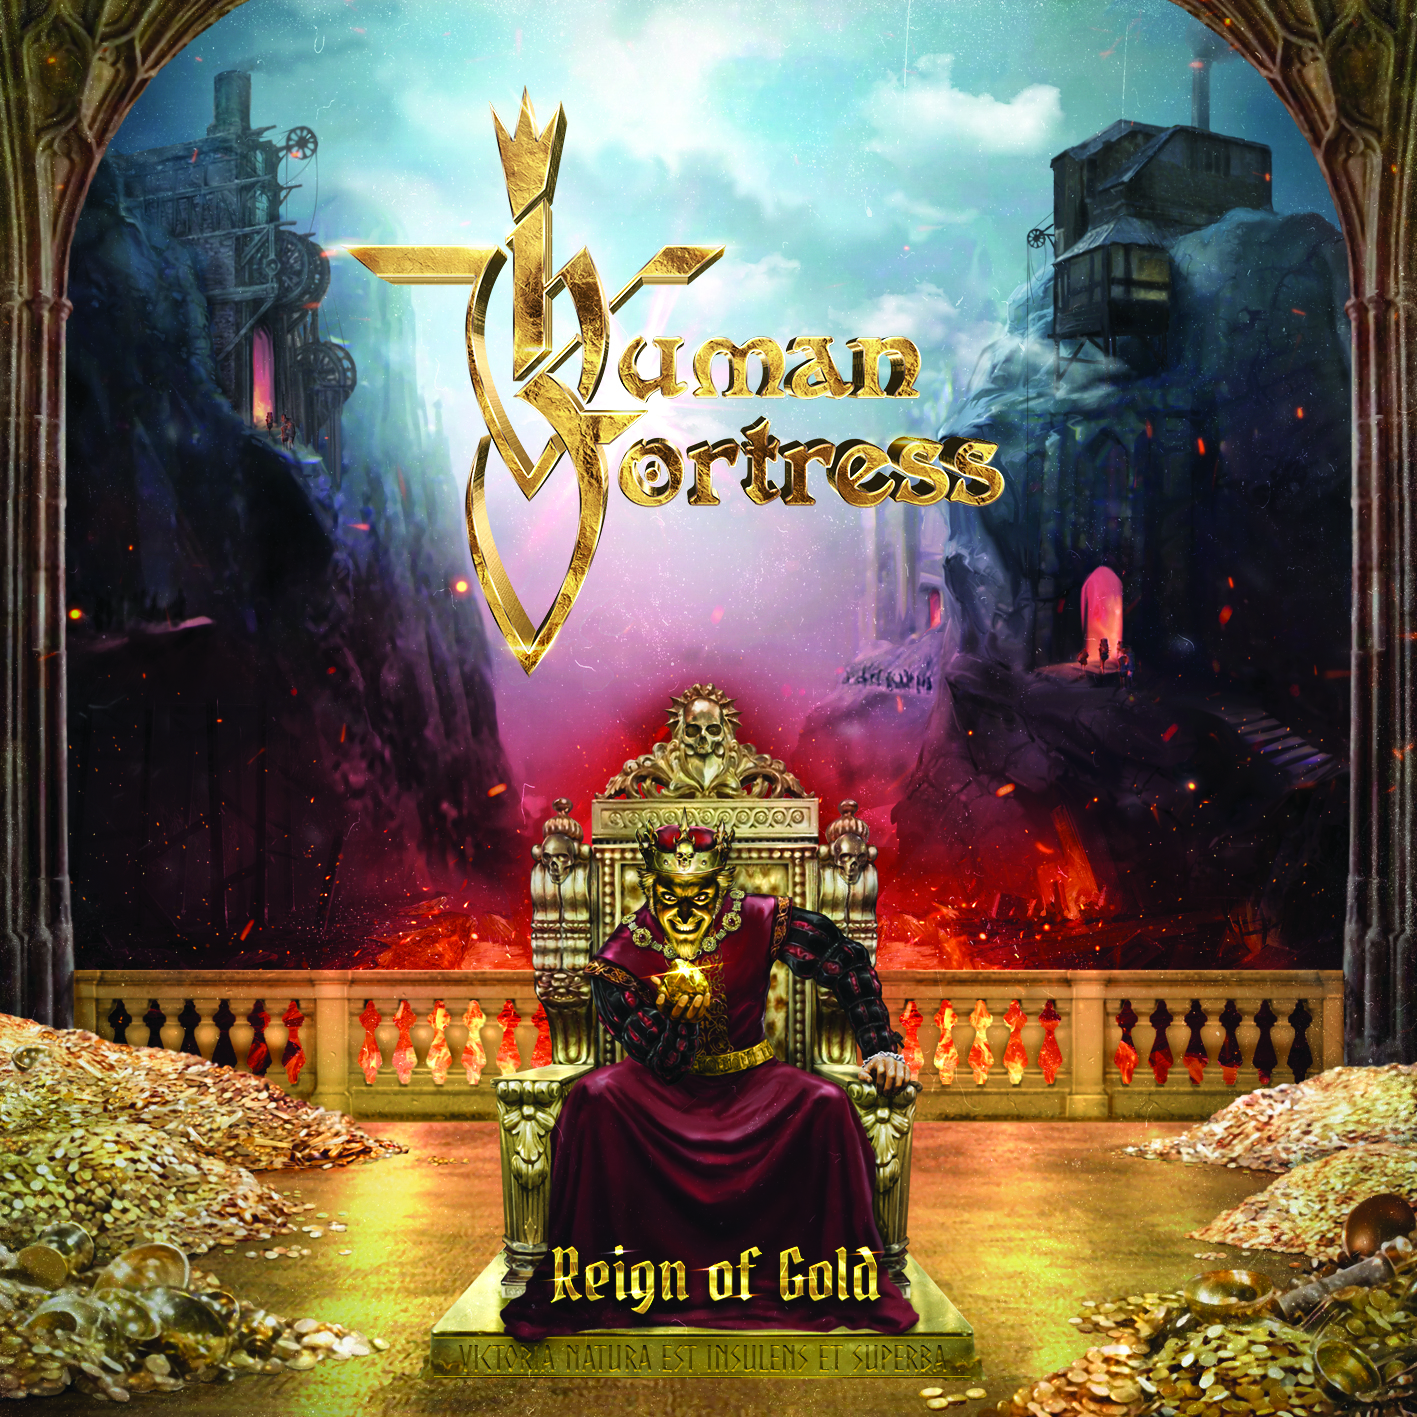 Human_Fortress_2019_Reign_of_Gold_AFM_CD_label